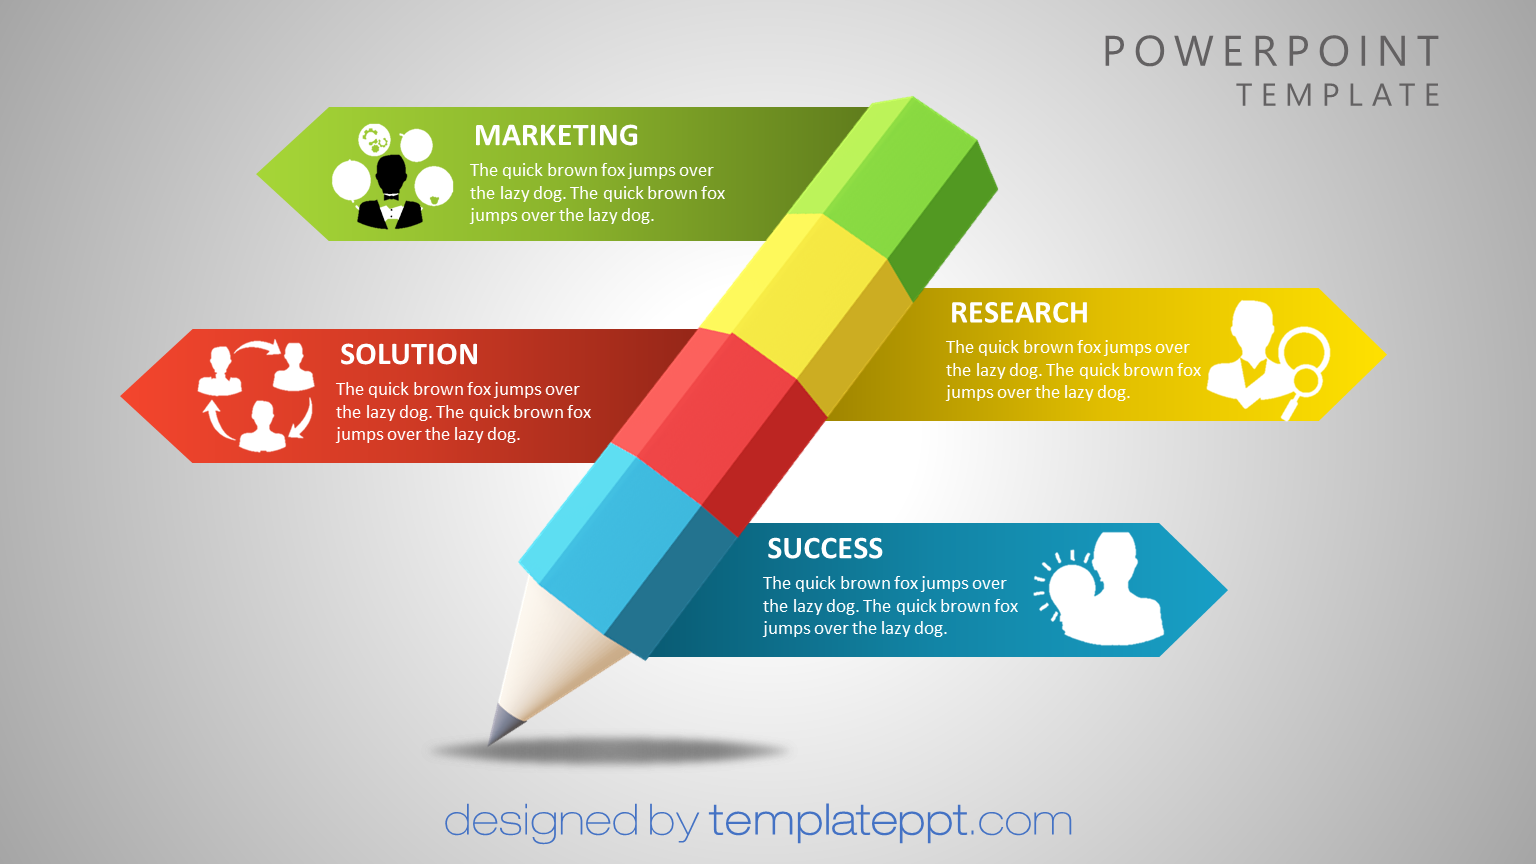 template powerpoint free download - gagnatashort.co